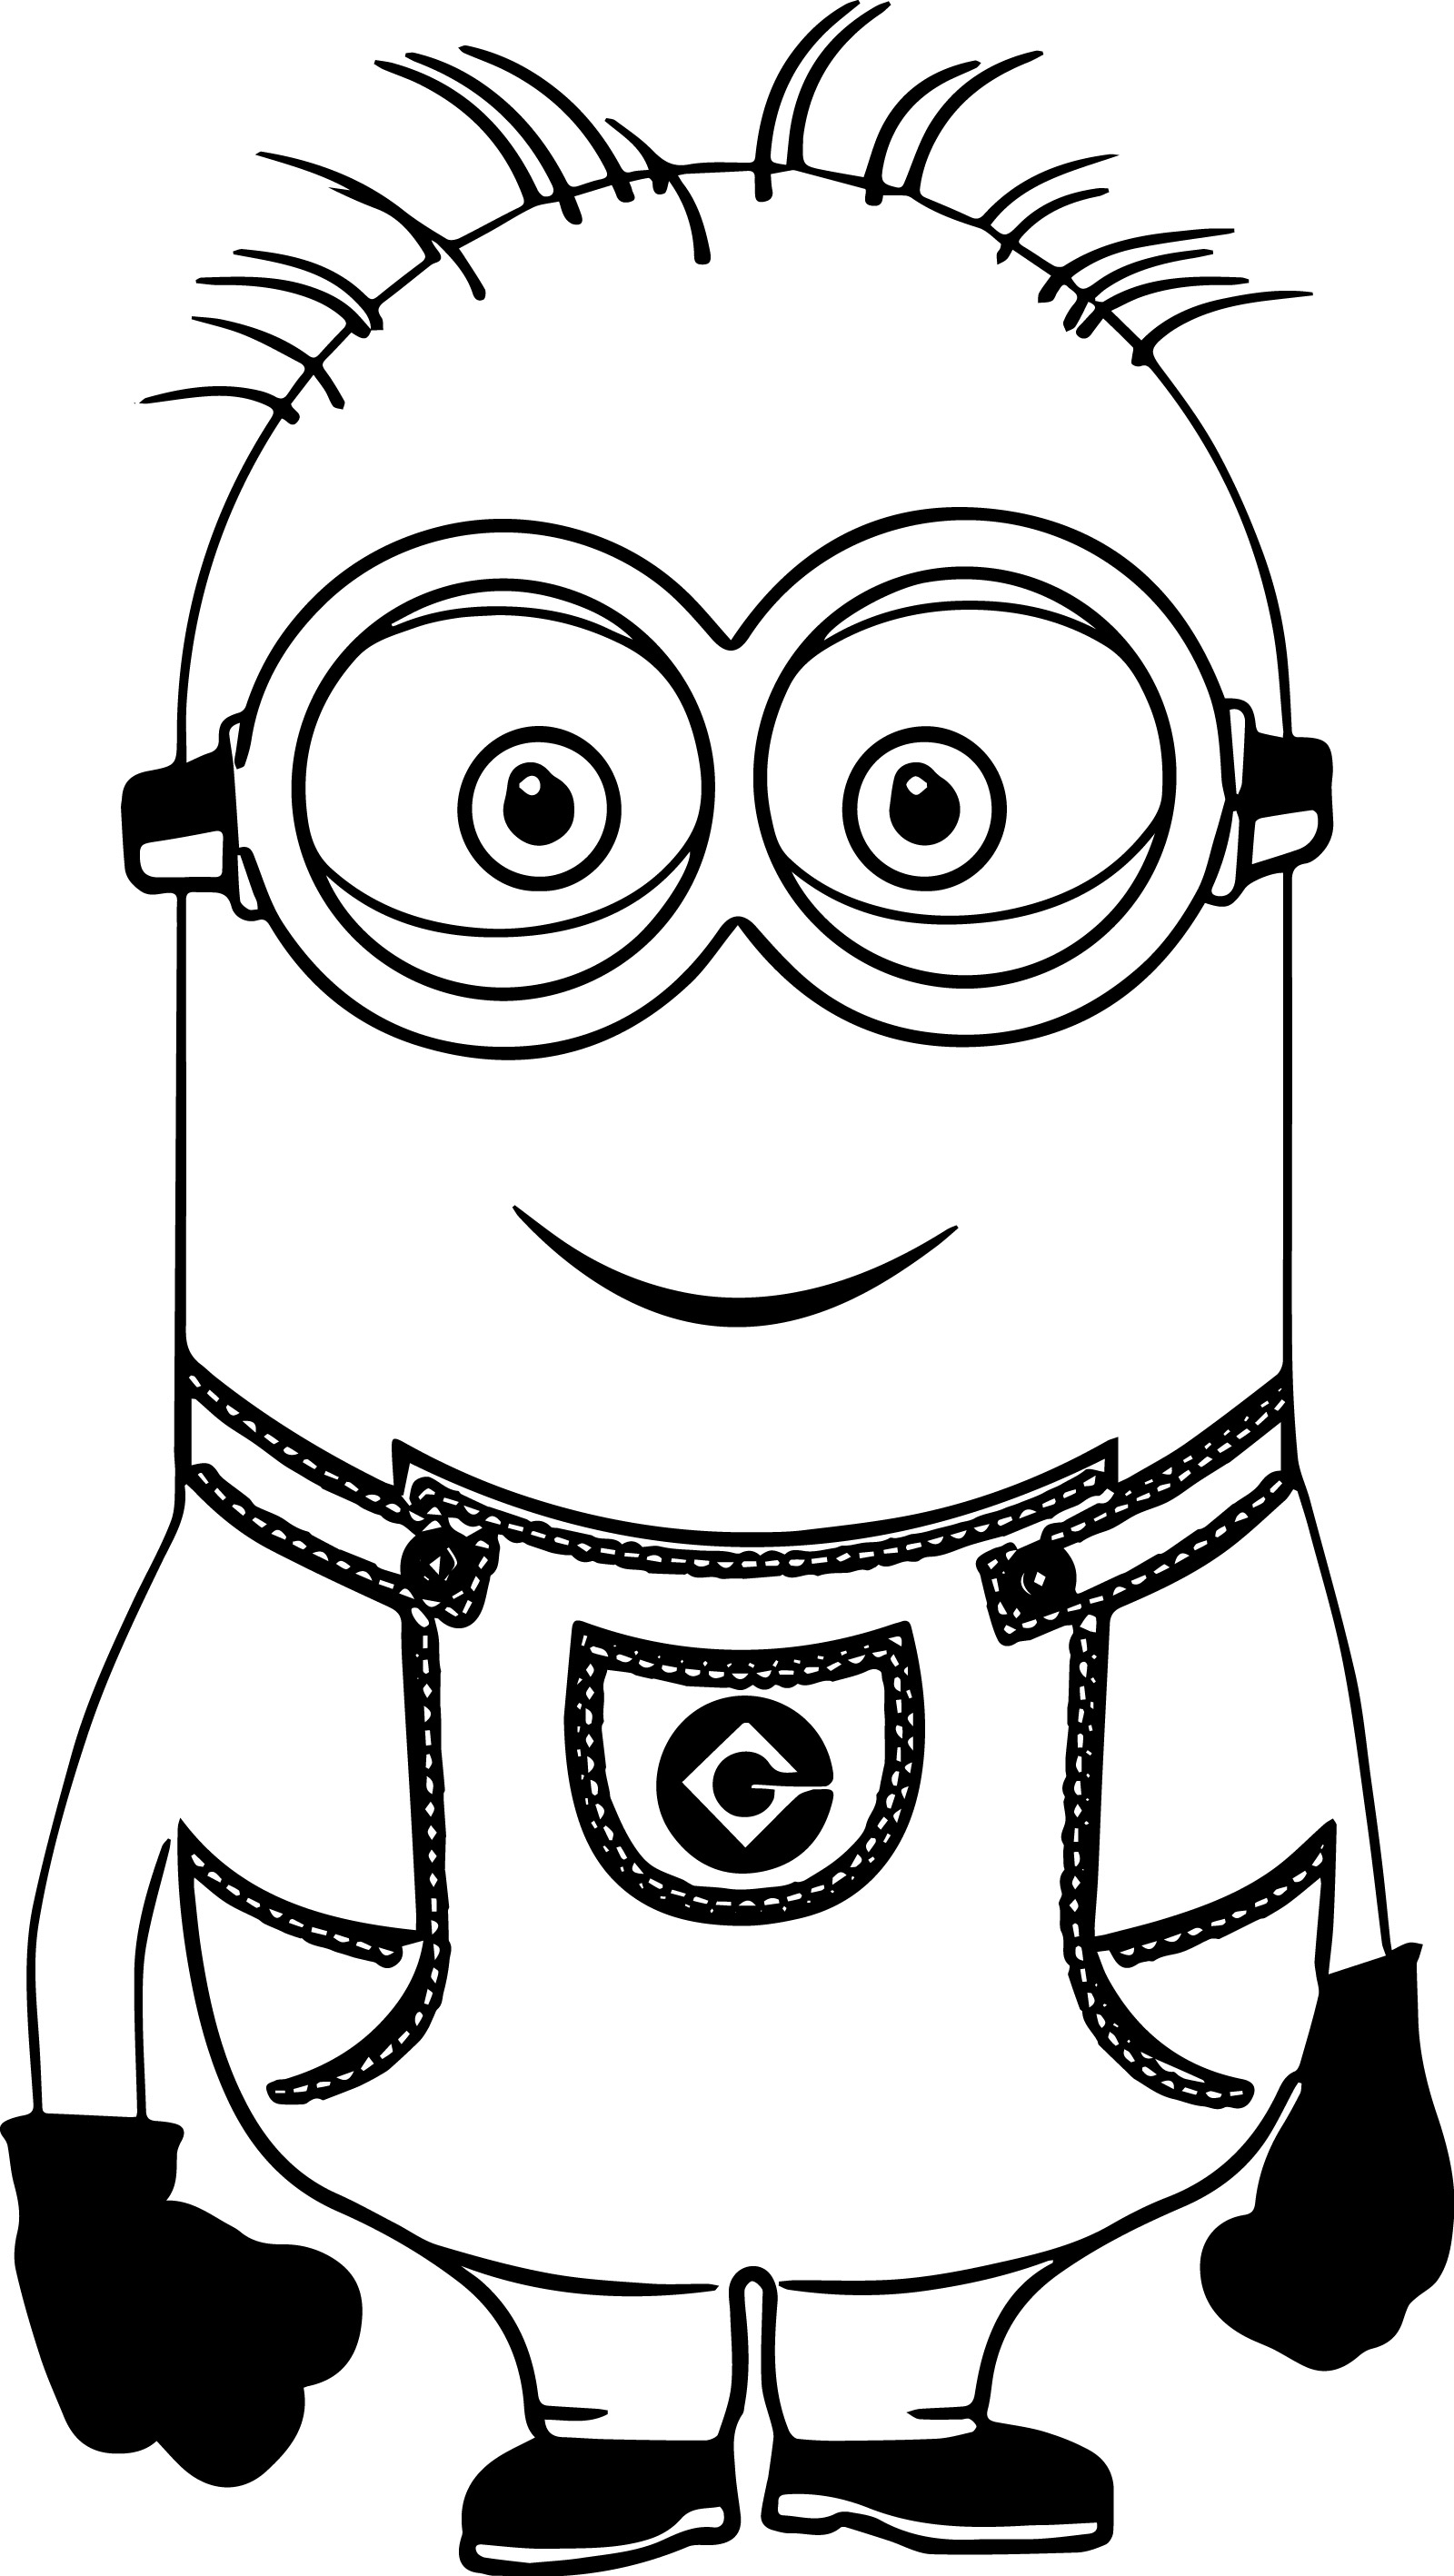 Minion Smile Coloring Page